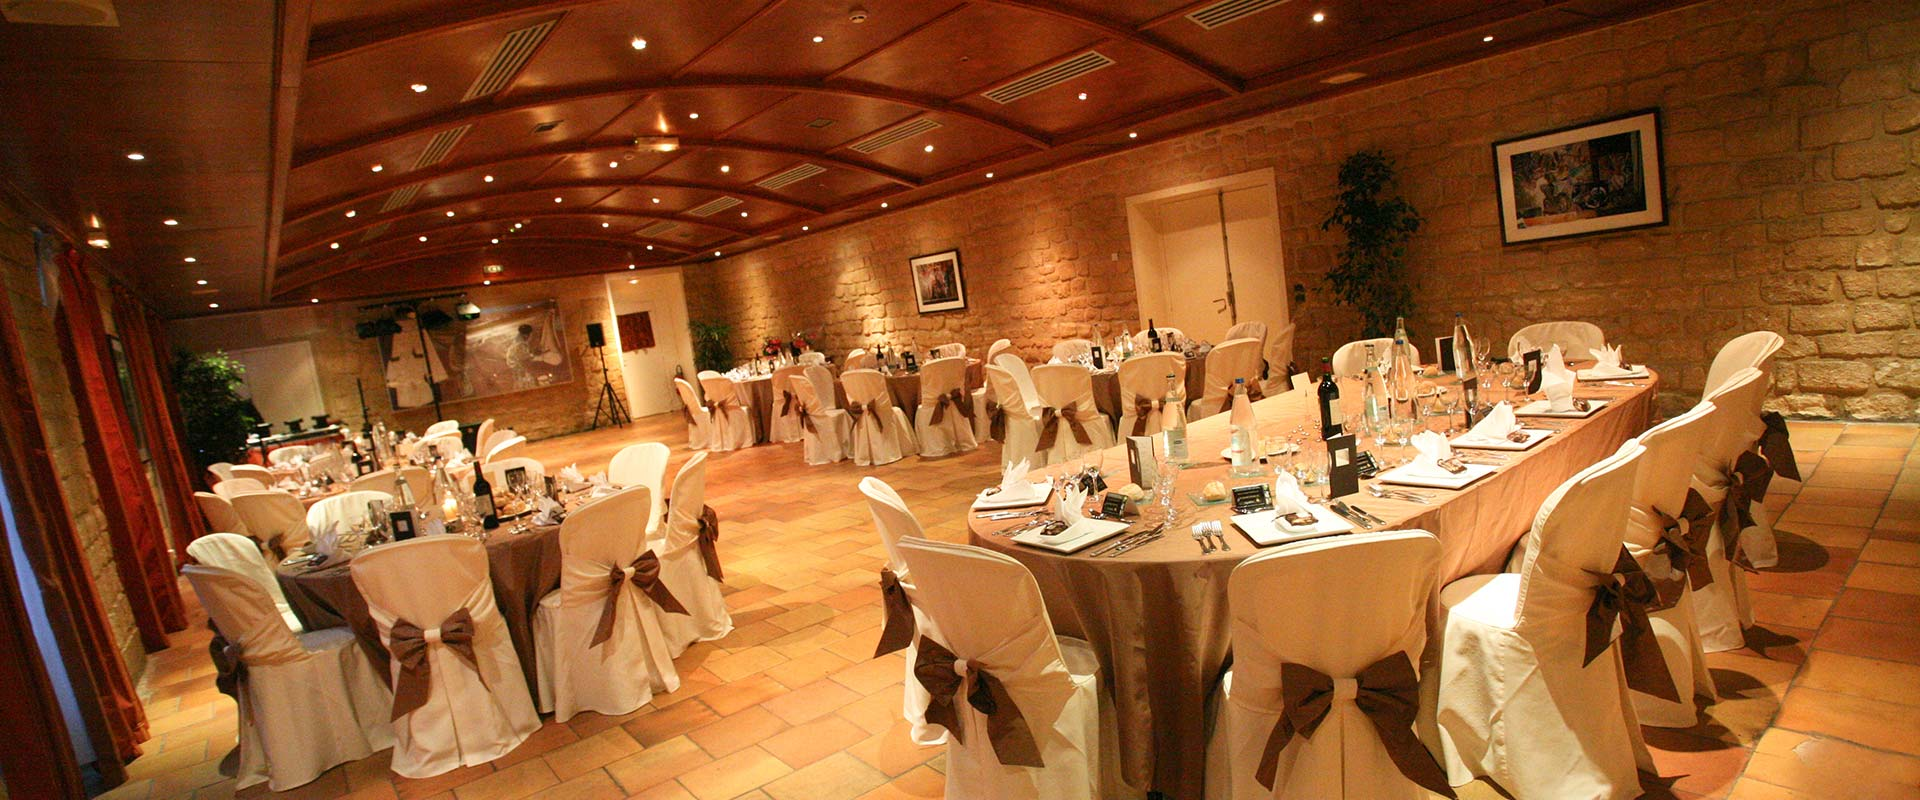 reception-chateau-hotel-5